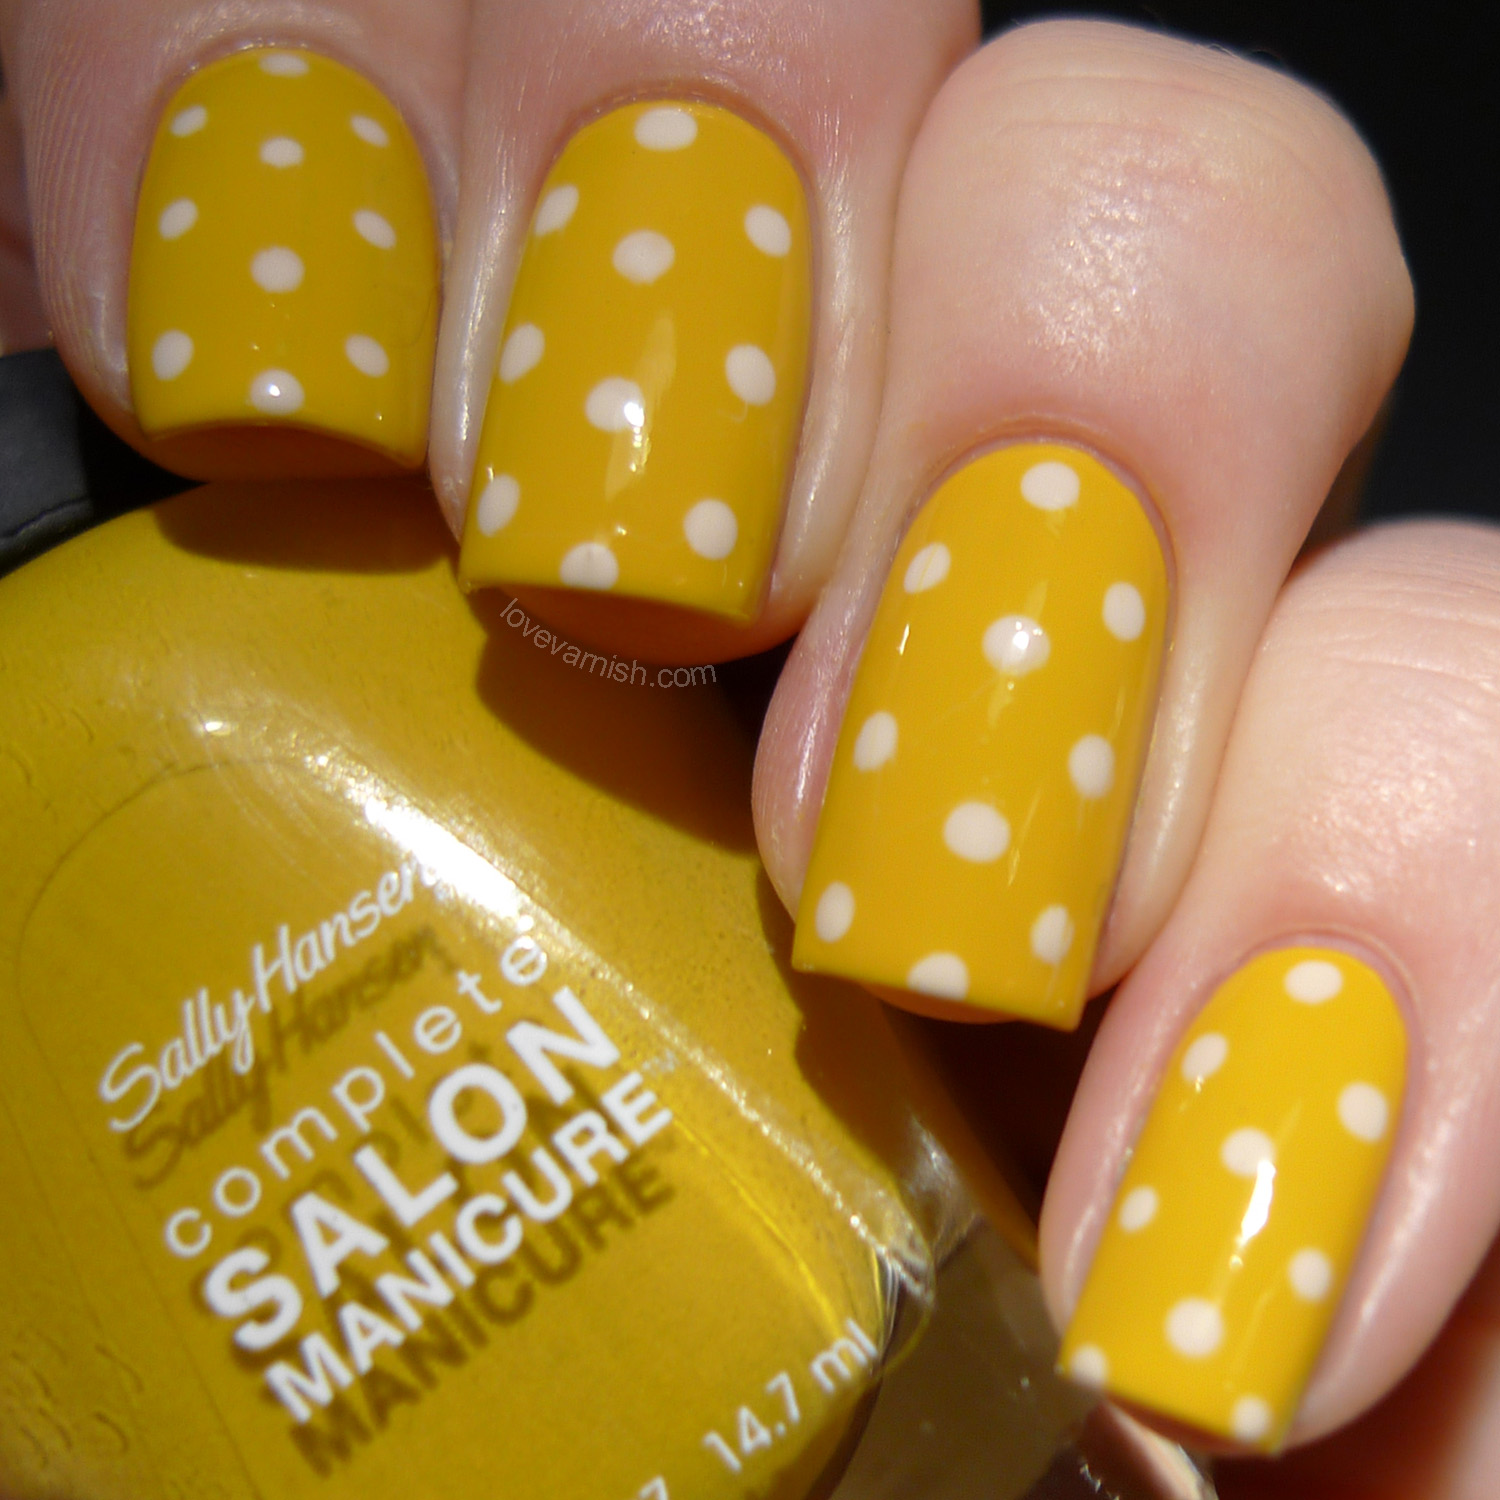 Sally Hansen Butterscotch yellow polish